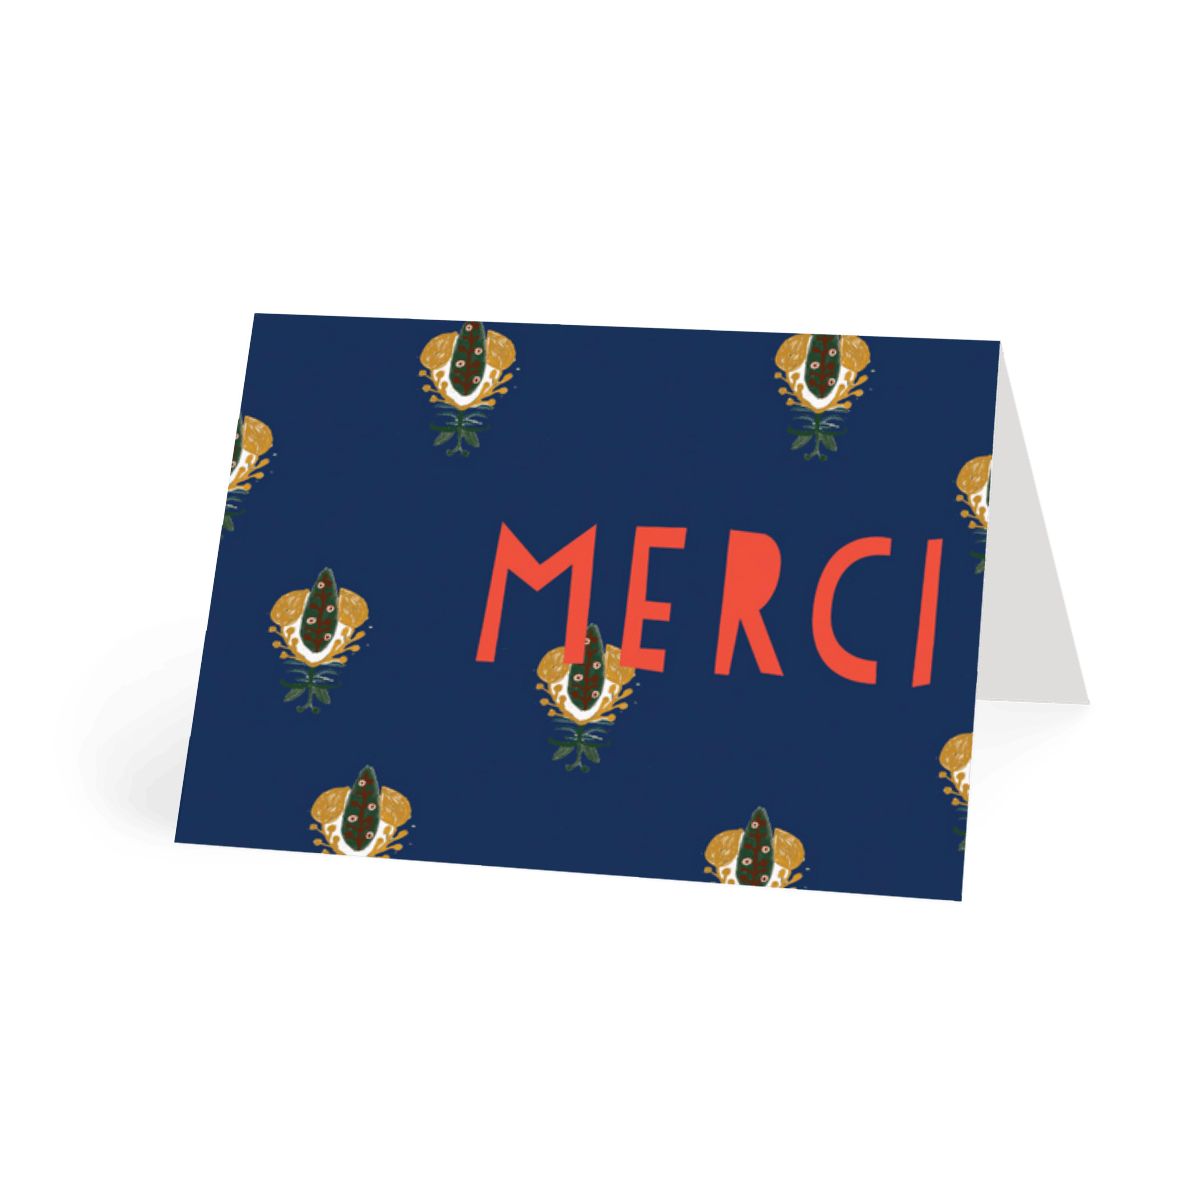 Https%3a%2f%2fwww.papier.com%2fproduct image%2f29285%2f14%2fcalico navy merci 7356 front 1508336519.png?ixlib=rb 1.1